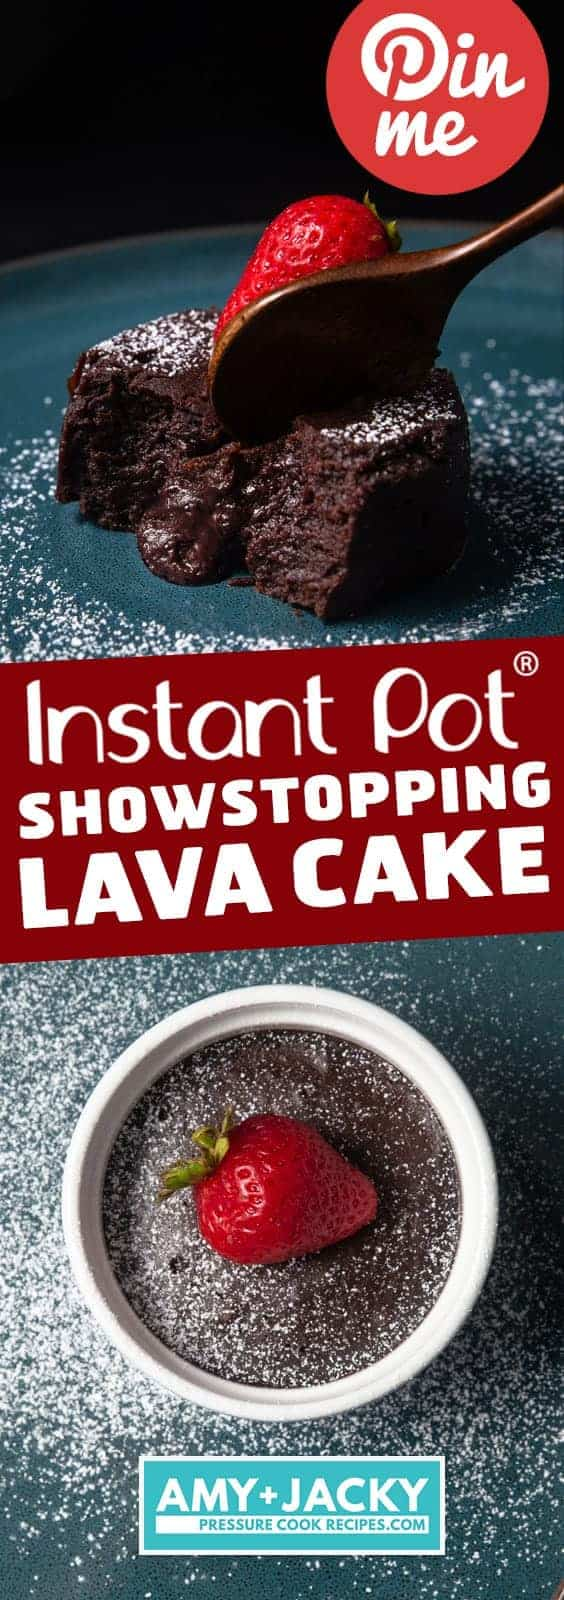 Instant Pot Lava Cake | Instant Pot Chocolate Lava Cake | Instant Pot Cake | Instant Pot Chocolate Fondant | Instant Pot Molten Chocolate Cake | Instant Pot Chocolate Cake | Pressure Cooker Lava Cake | Pressure Cooker Cake | Instant Pot Desserts | Pressure Cooker Desserts #instantpot #pressurecooker #recipes #desserts #sweets